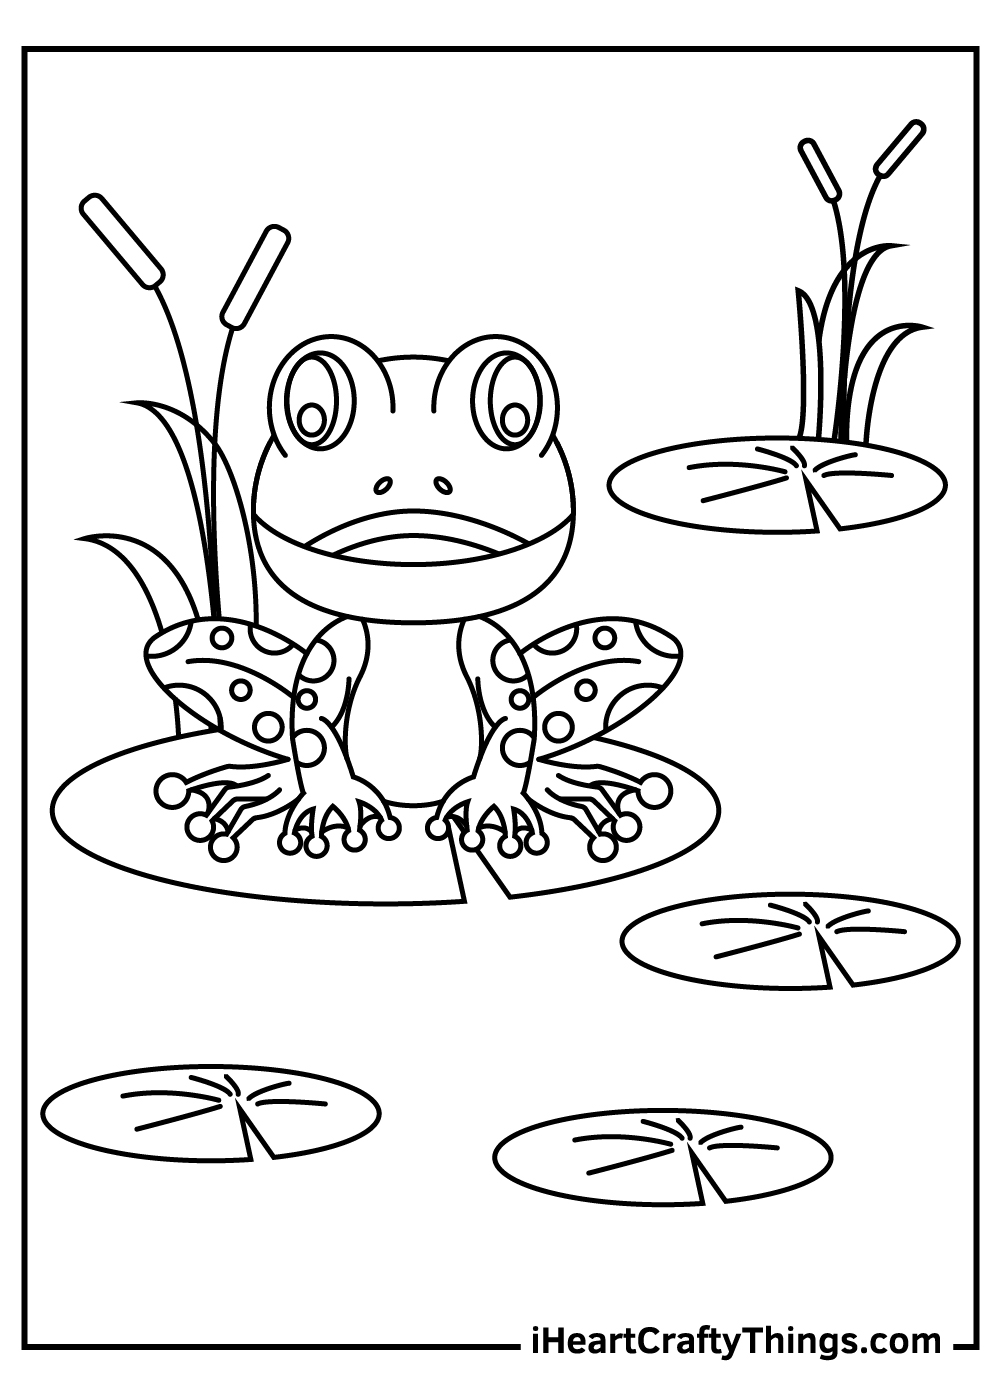 cute frog coloring sheets for kids free printable